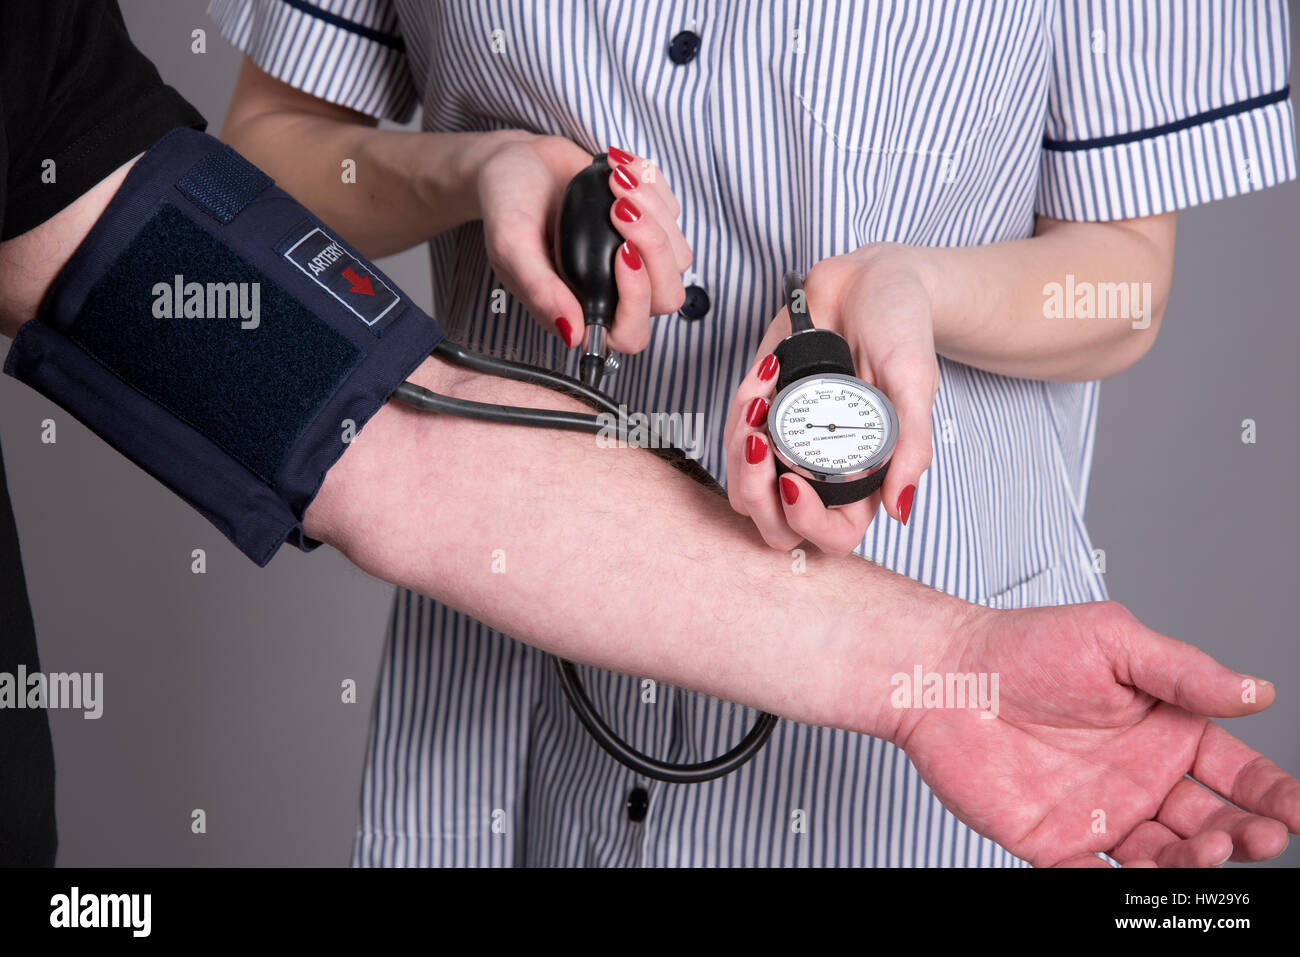 Nurse using a blood pressure monitor on a patient - Stock Image